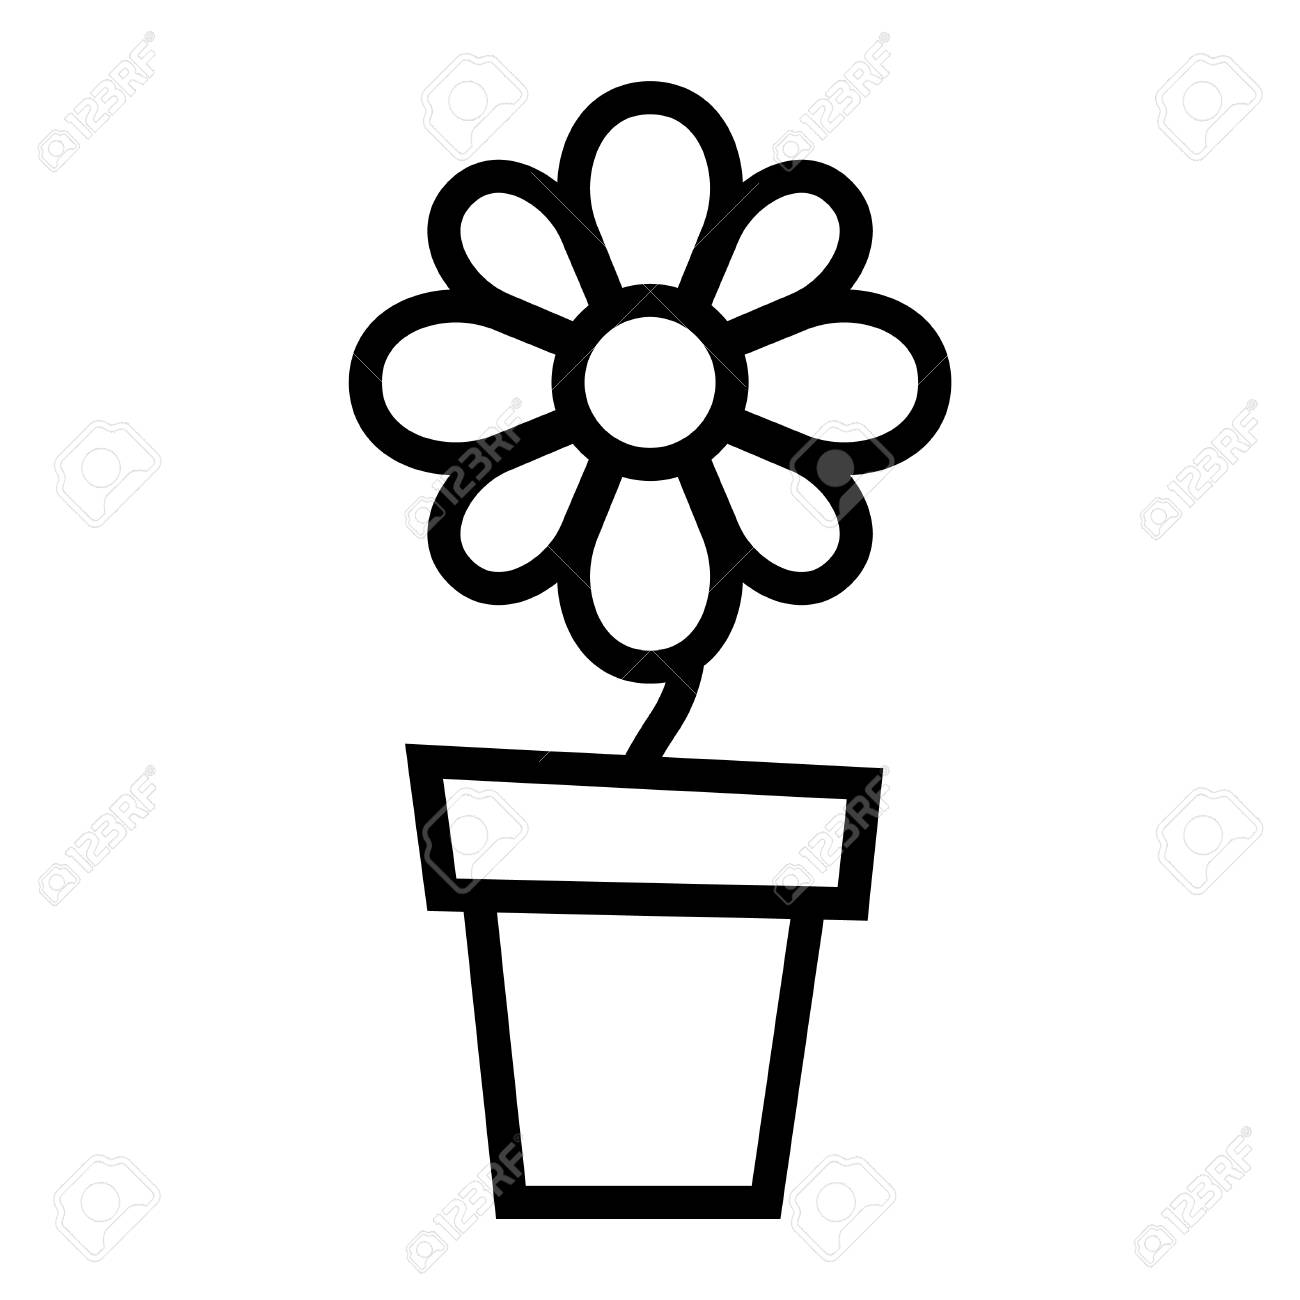 Flower Pot Clipart Black And White & Free Clip Art Images #31452.